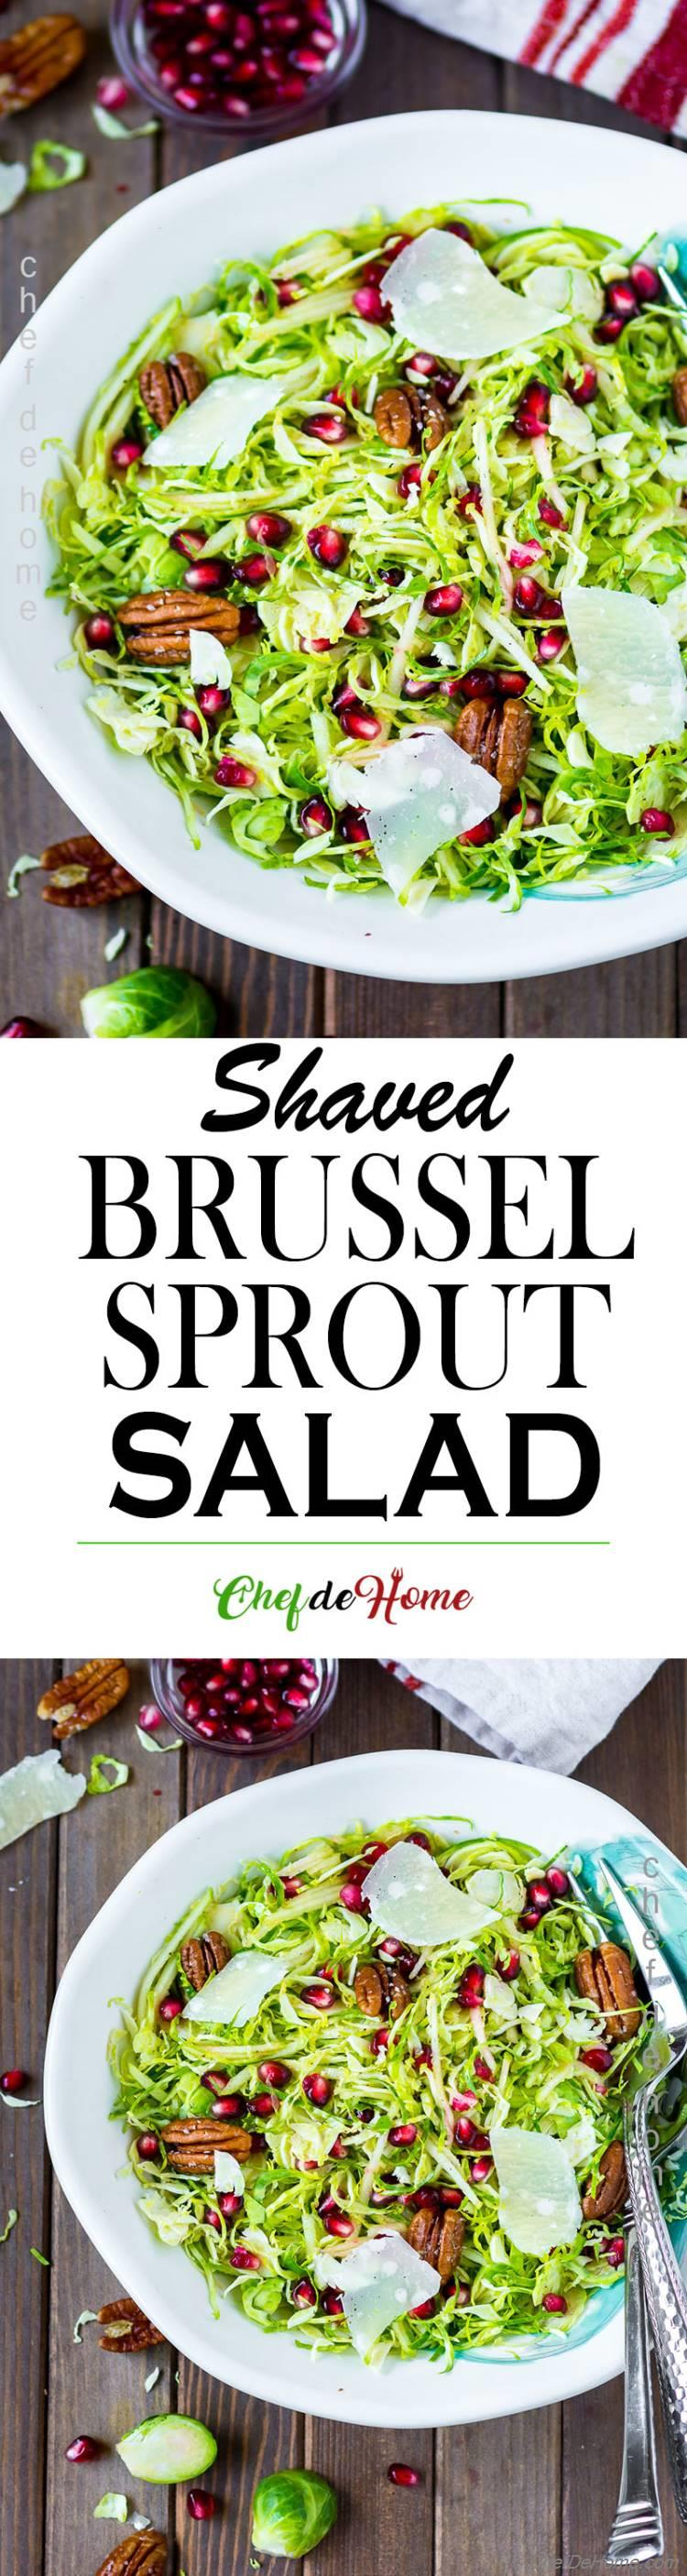 Brussel Sprout Salad Shaved